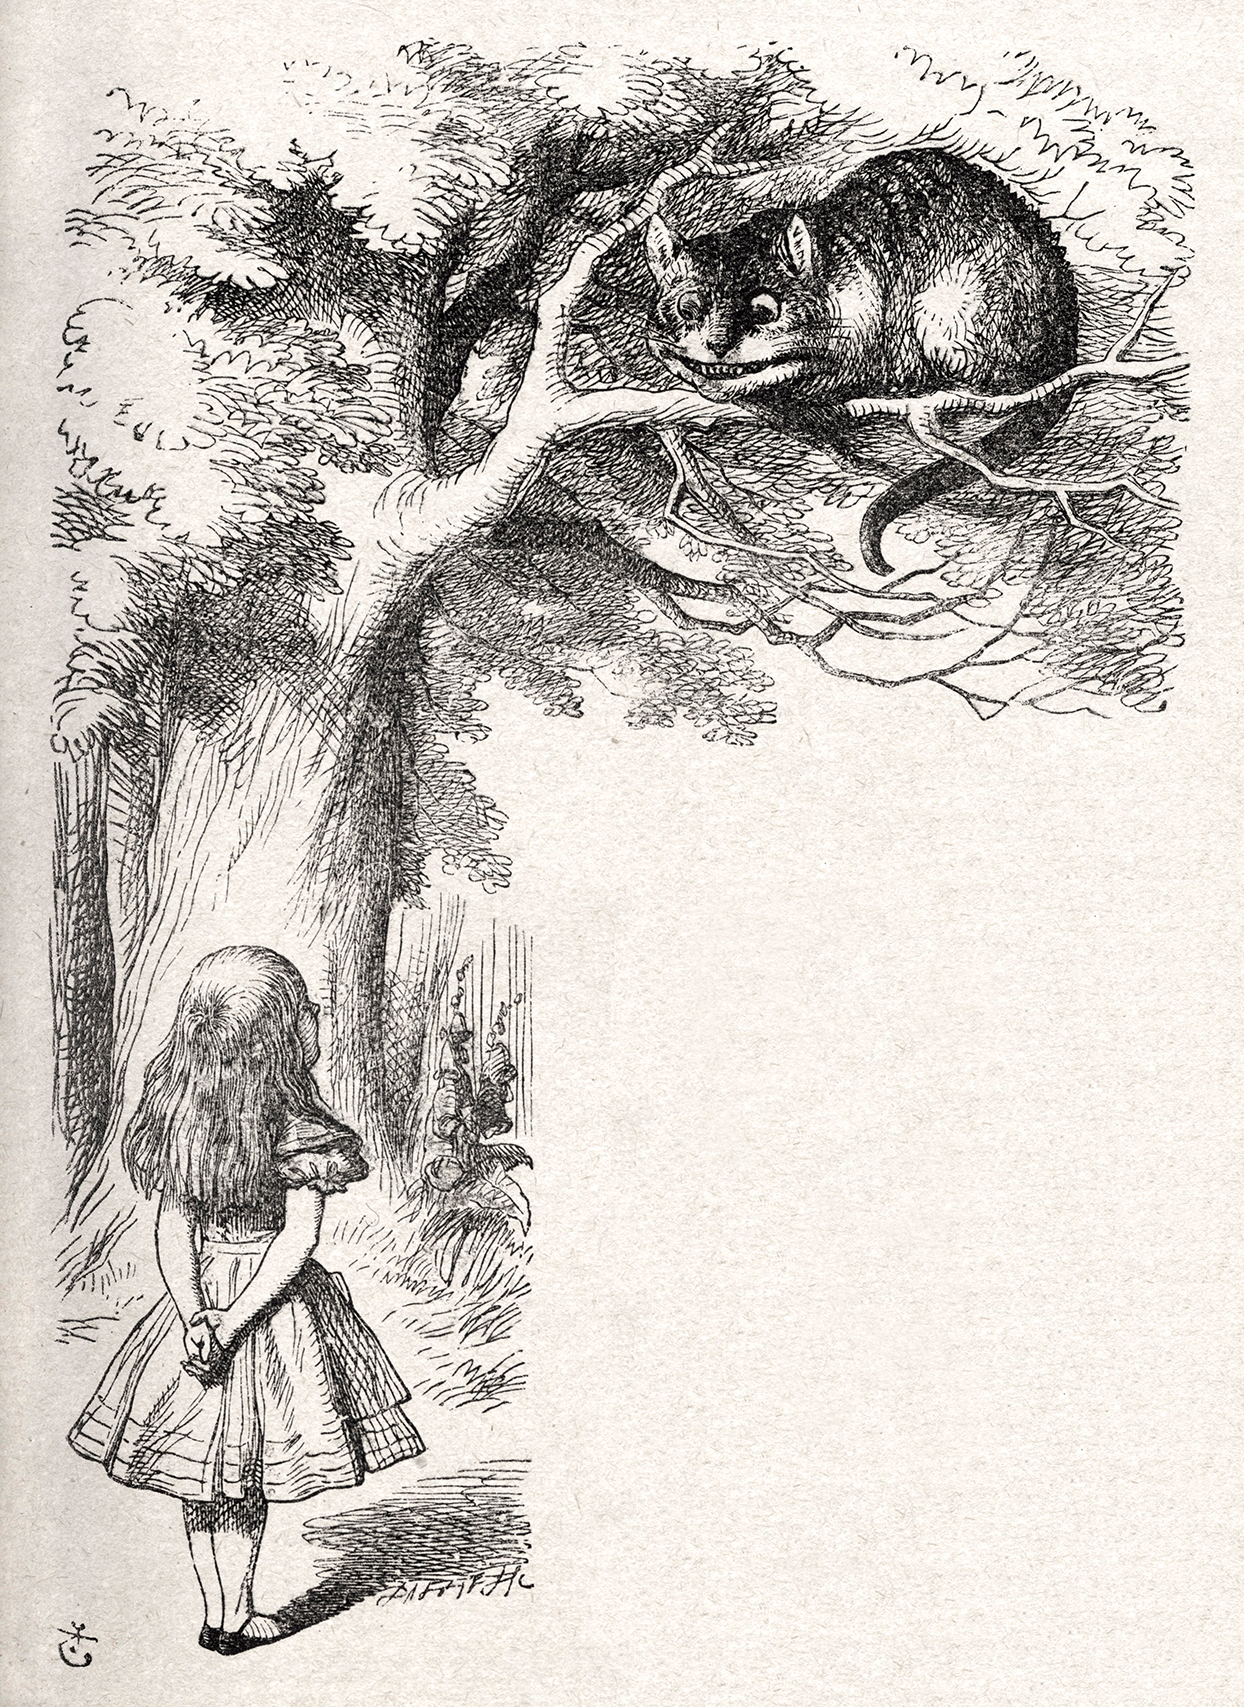 Drawing from Alice in Wonderland of Cheshire cat in tree